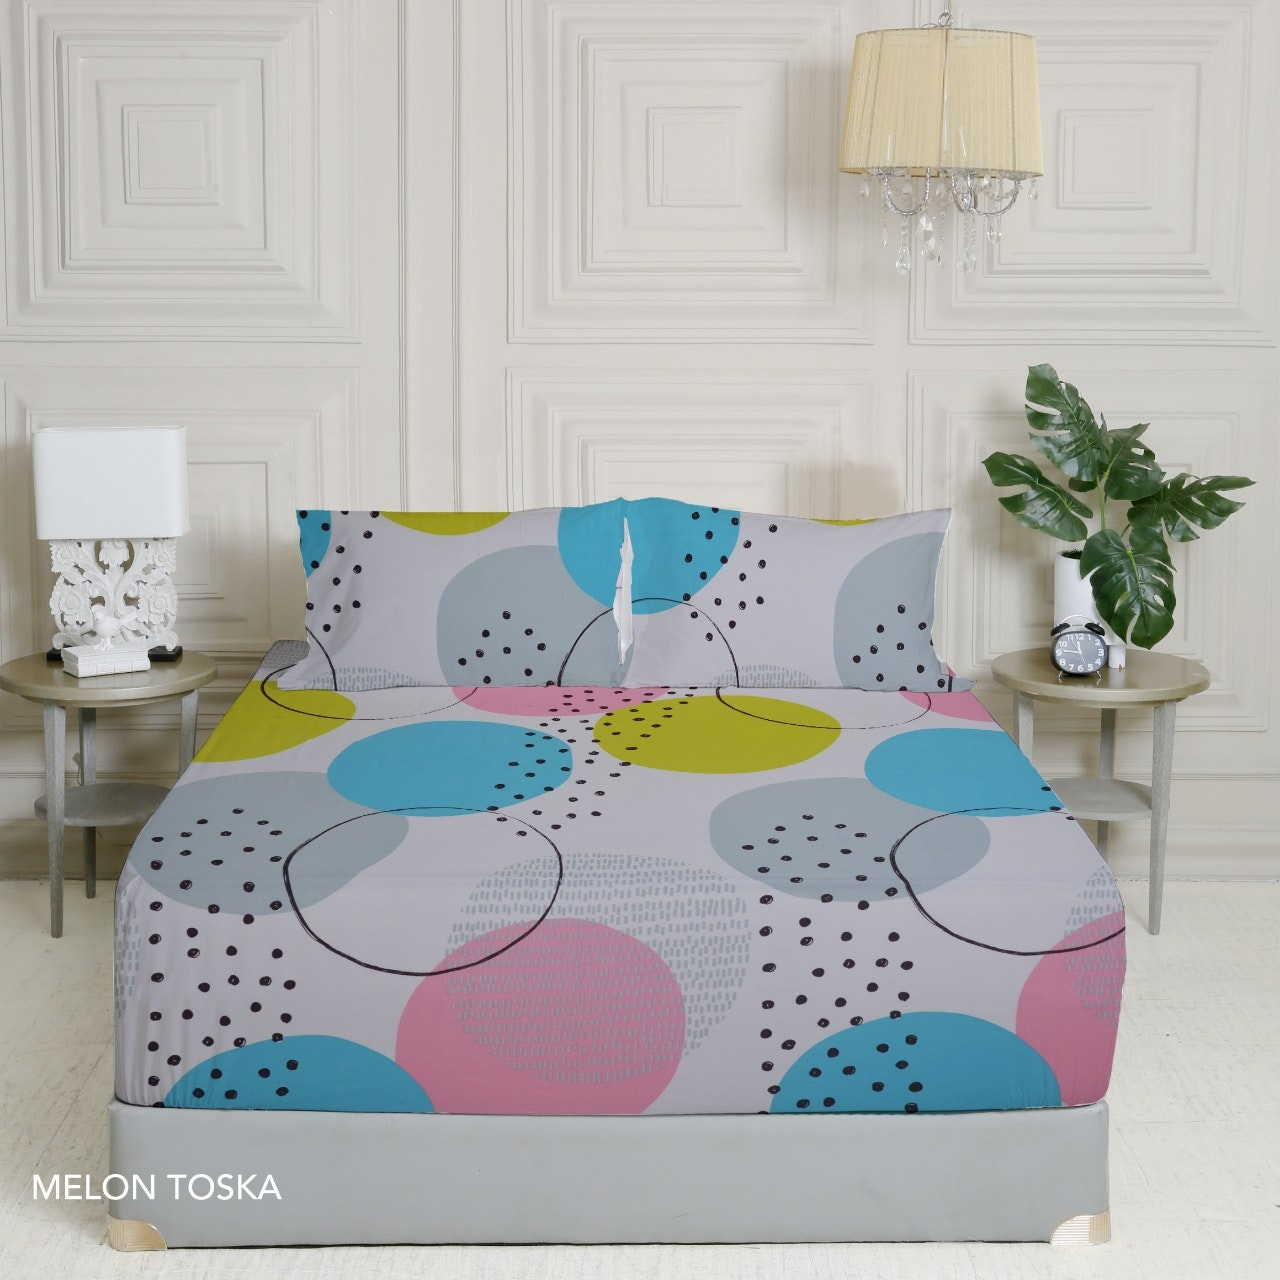 King Rabbit Set Sprei Sarung Bantal Queen Motif Melon - Toska Uk 160x200x40 cm